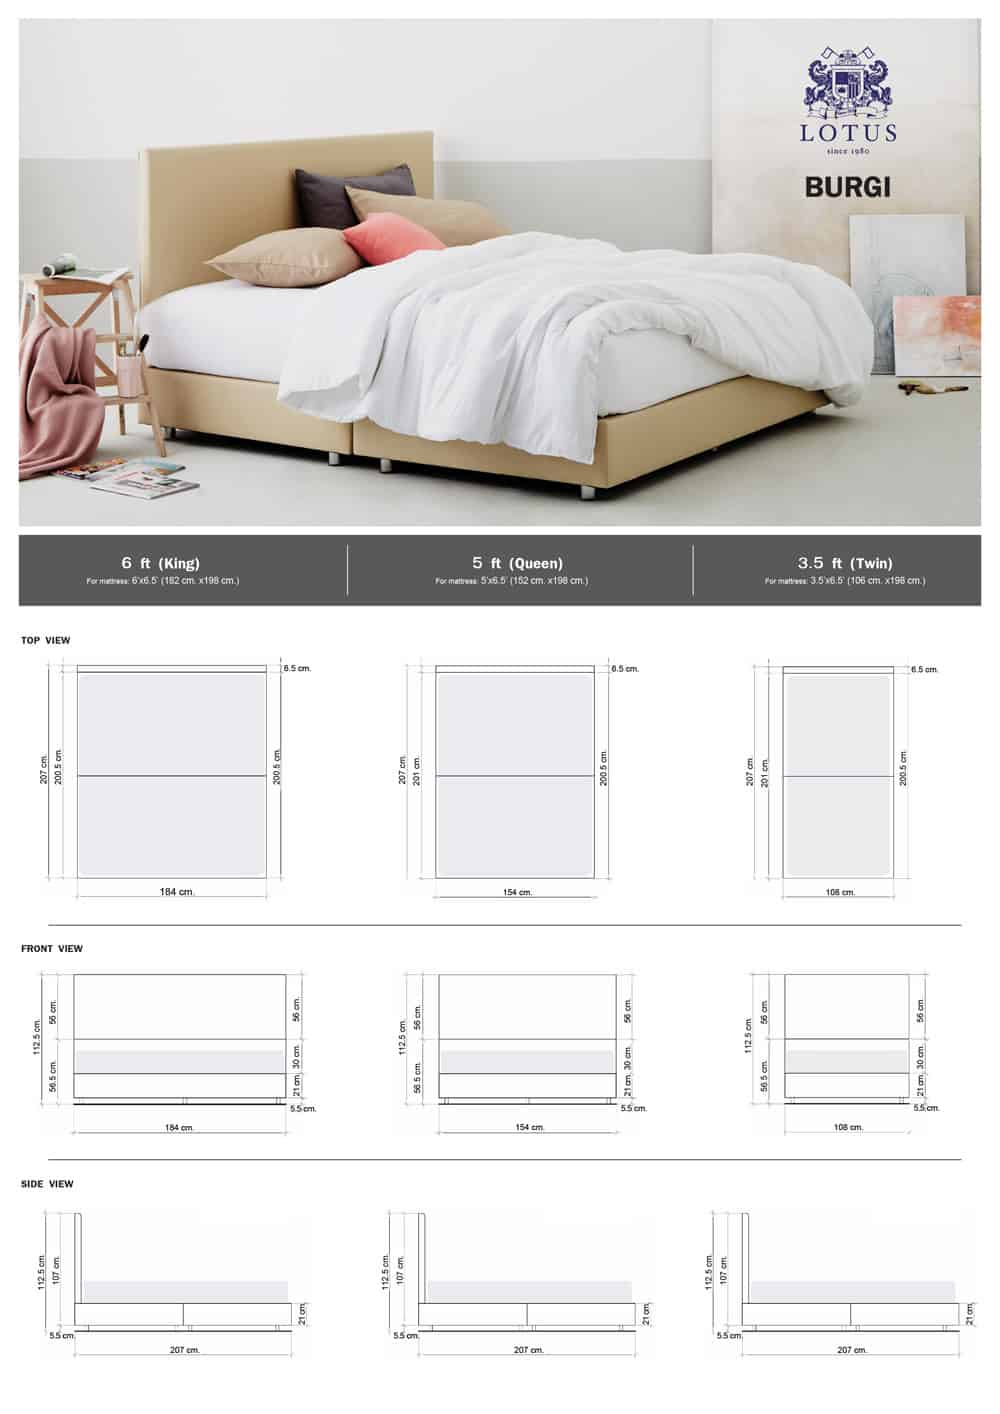 Lotus Bed Frame - Burgi 5